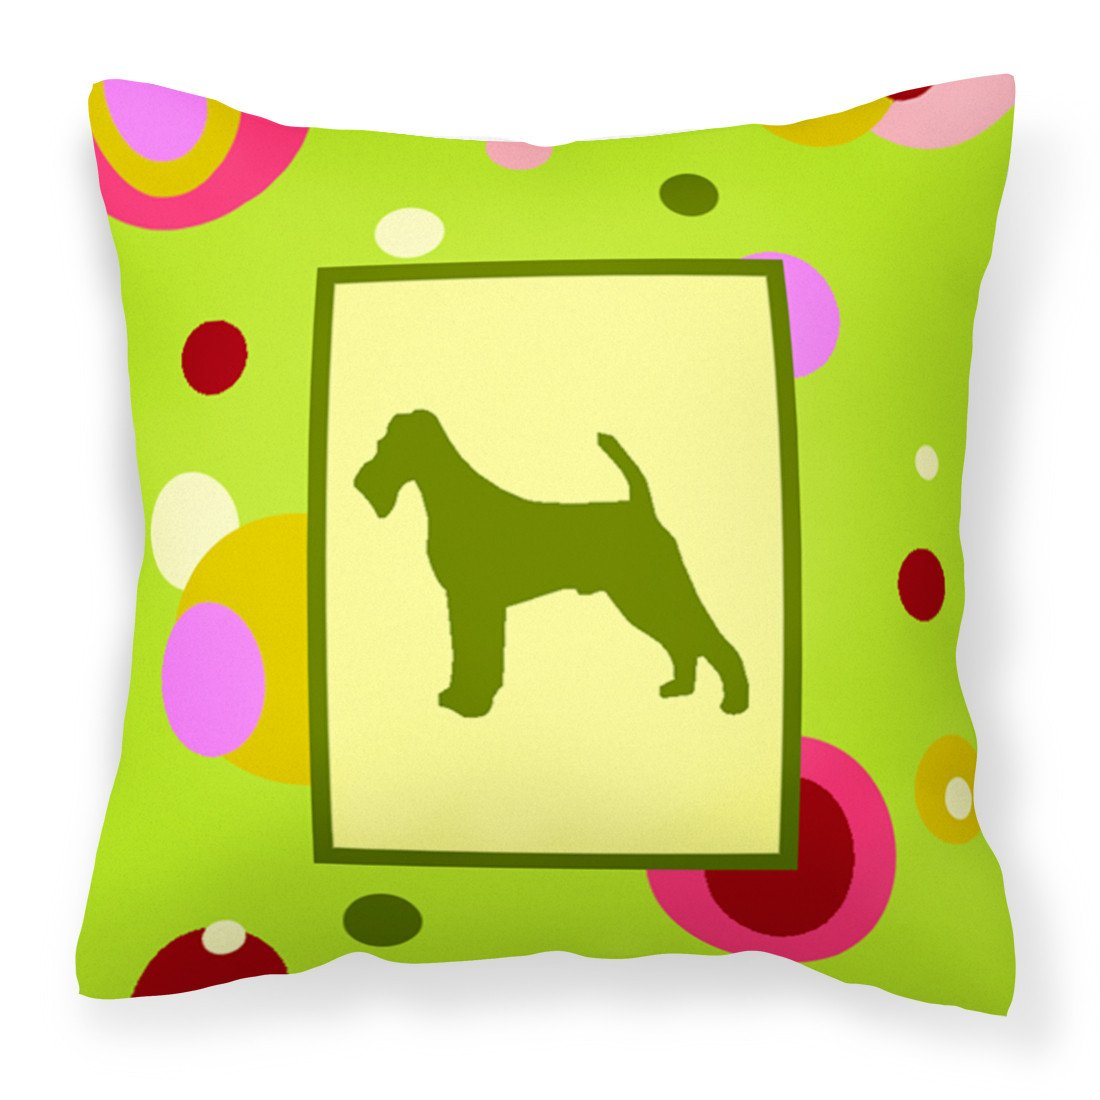 Lime Green Dots Irish Terrier Fabric Decorative Pillow CK1039PW1414 by Caroline's Treasures